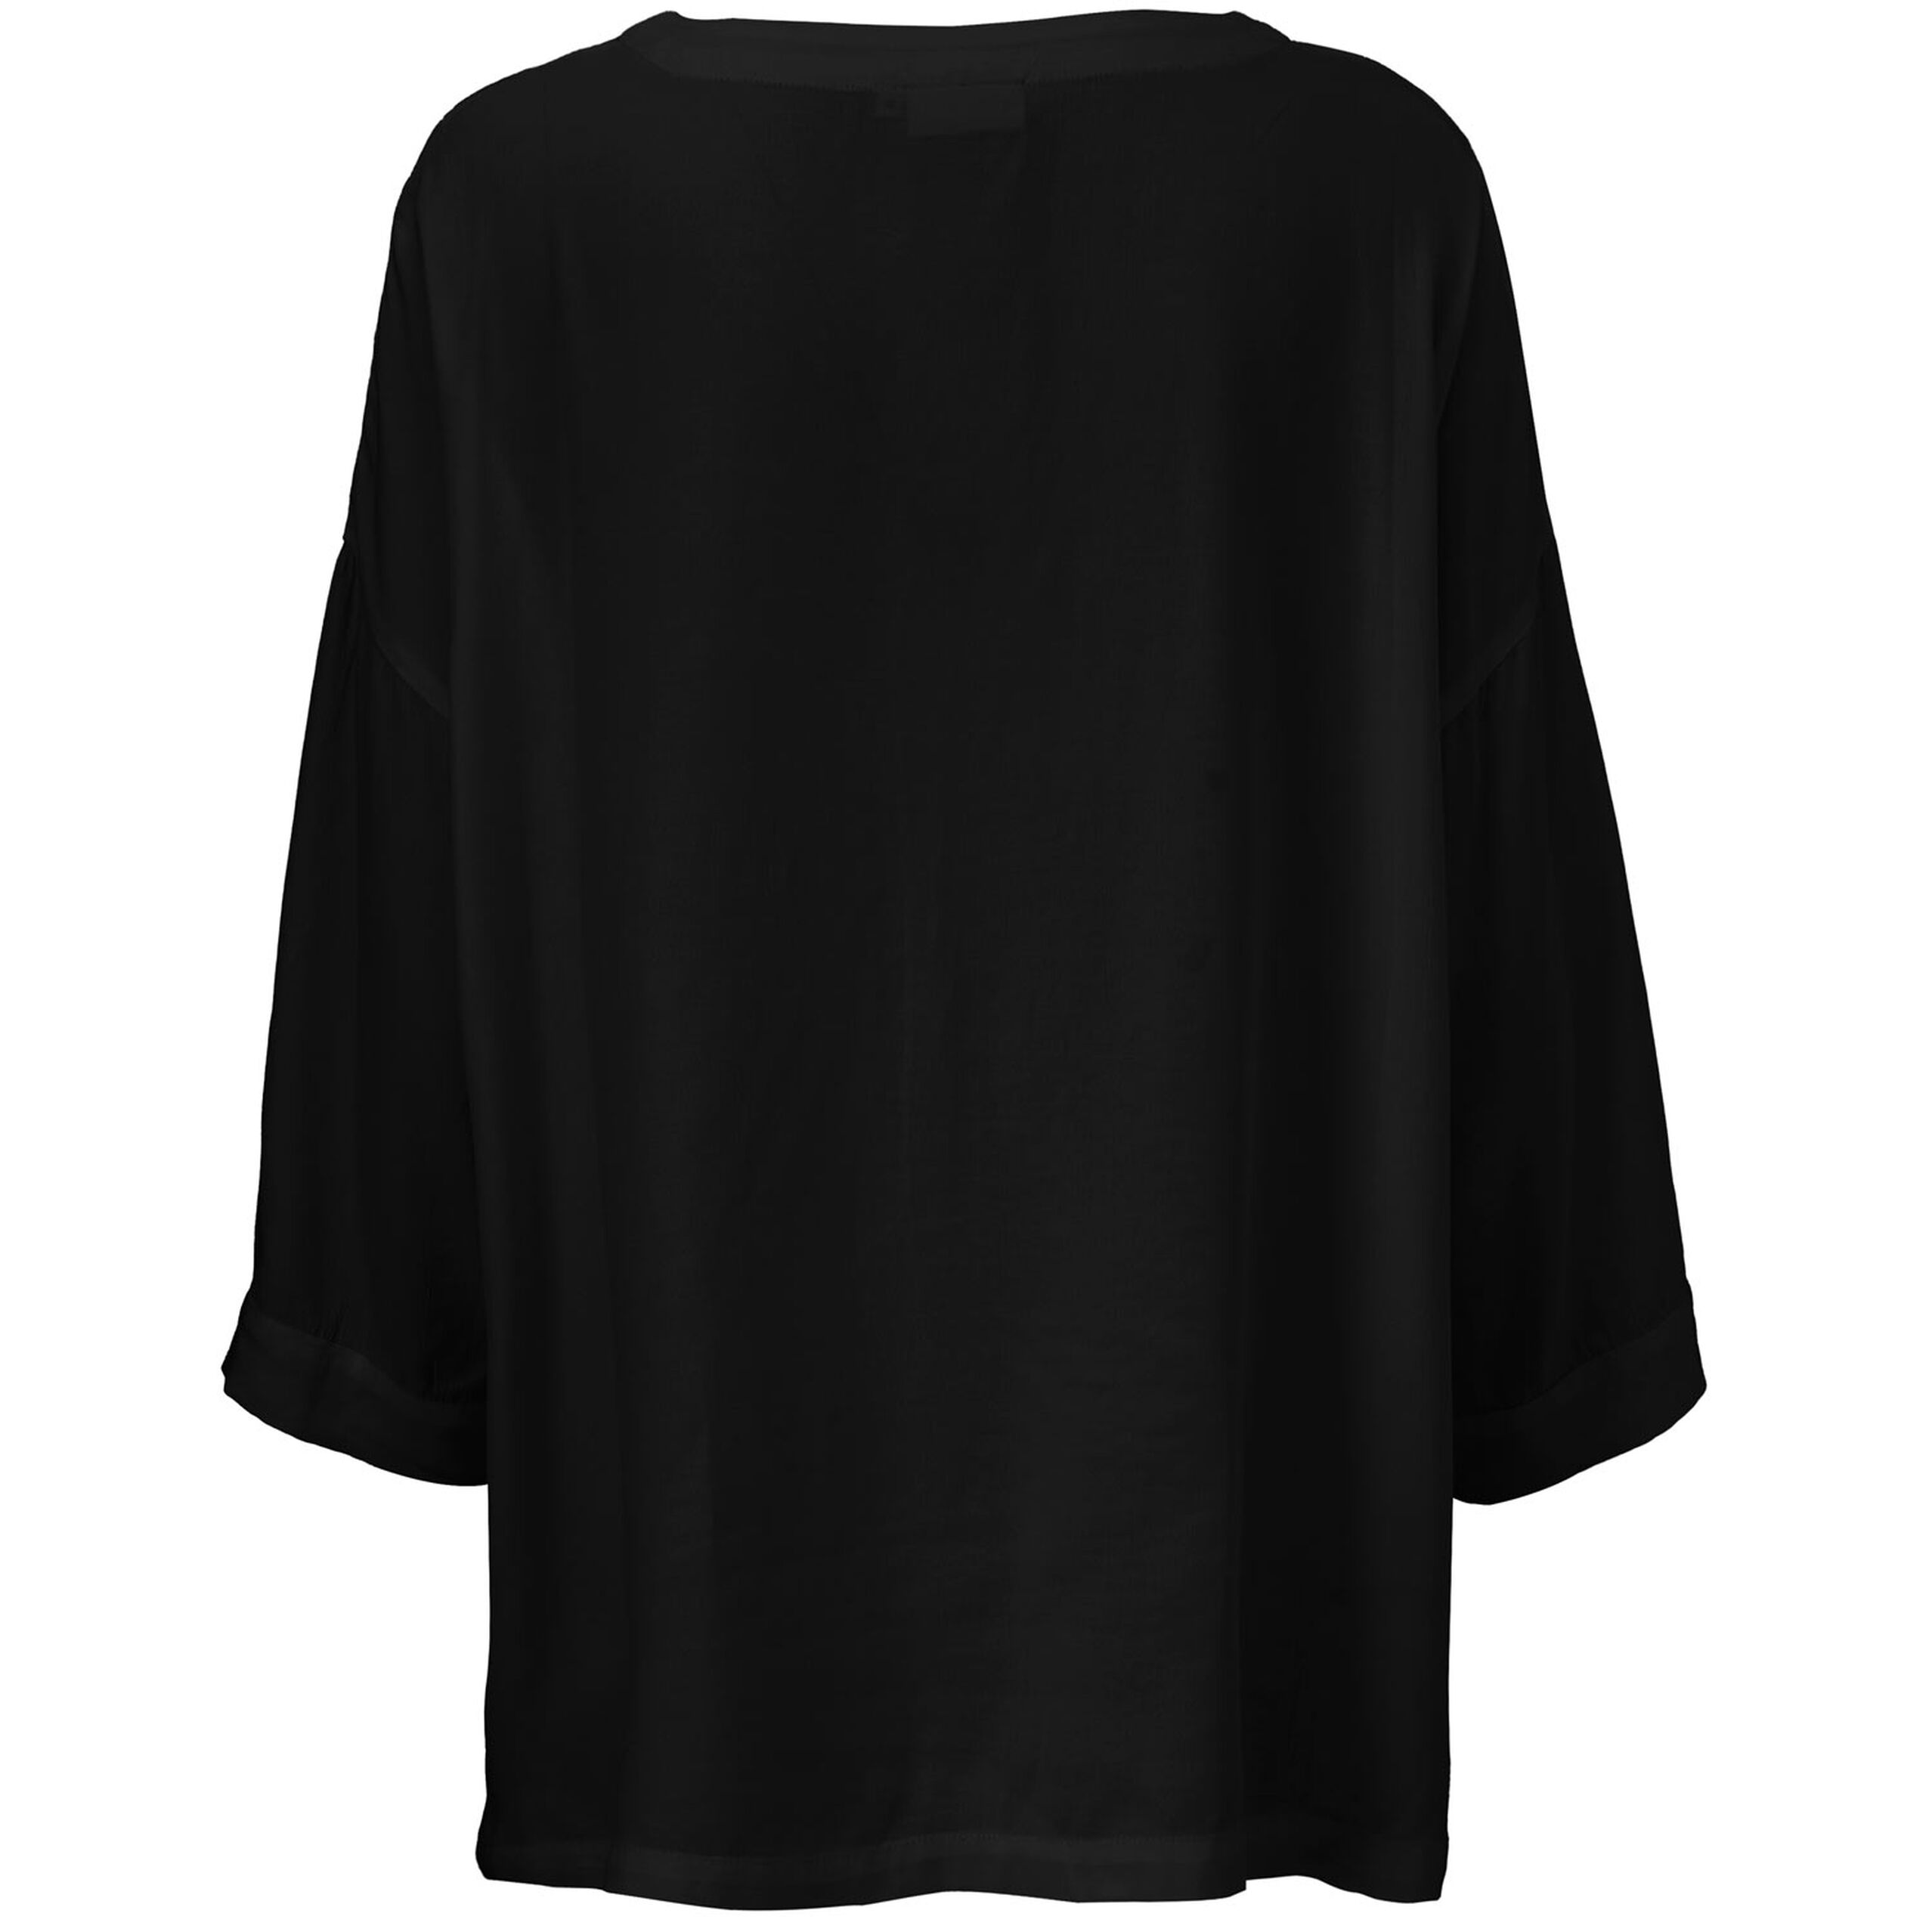 BECCA SHIRT, Black, hi-res